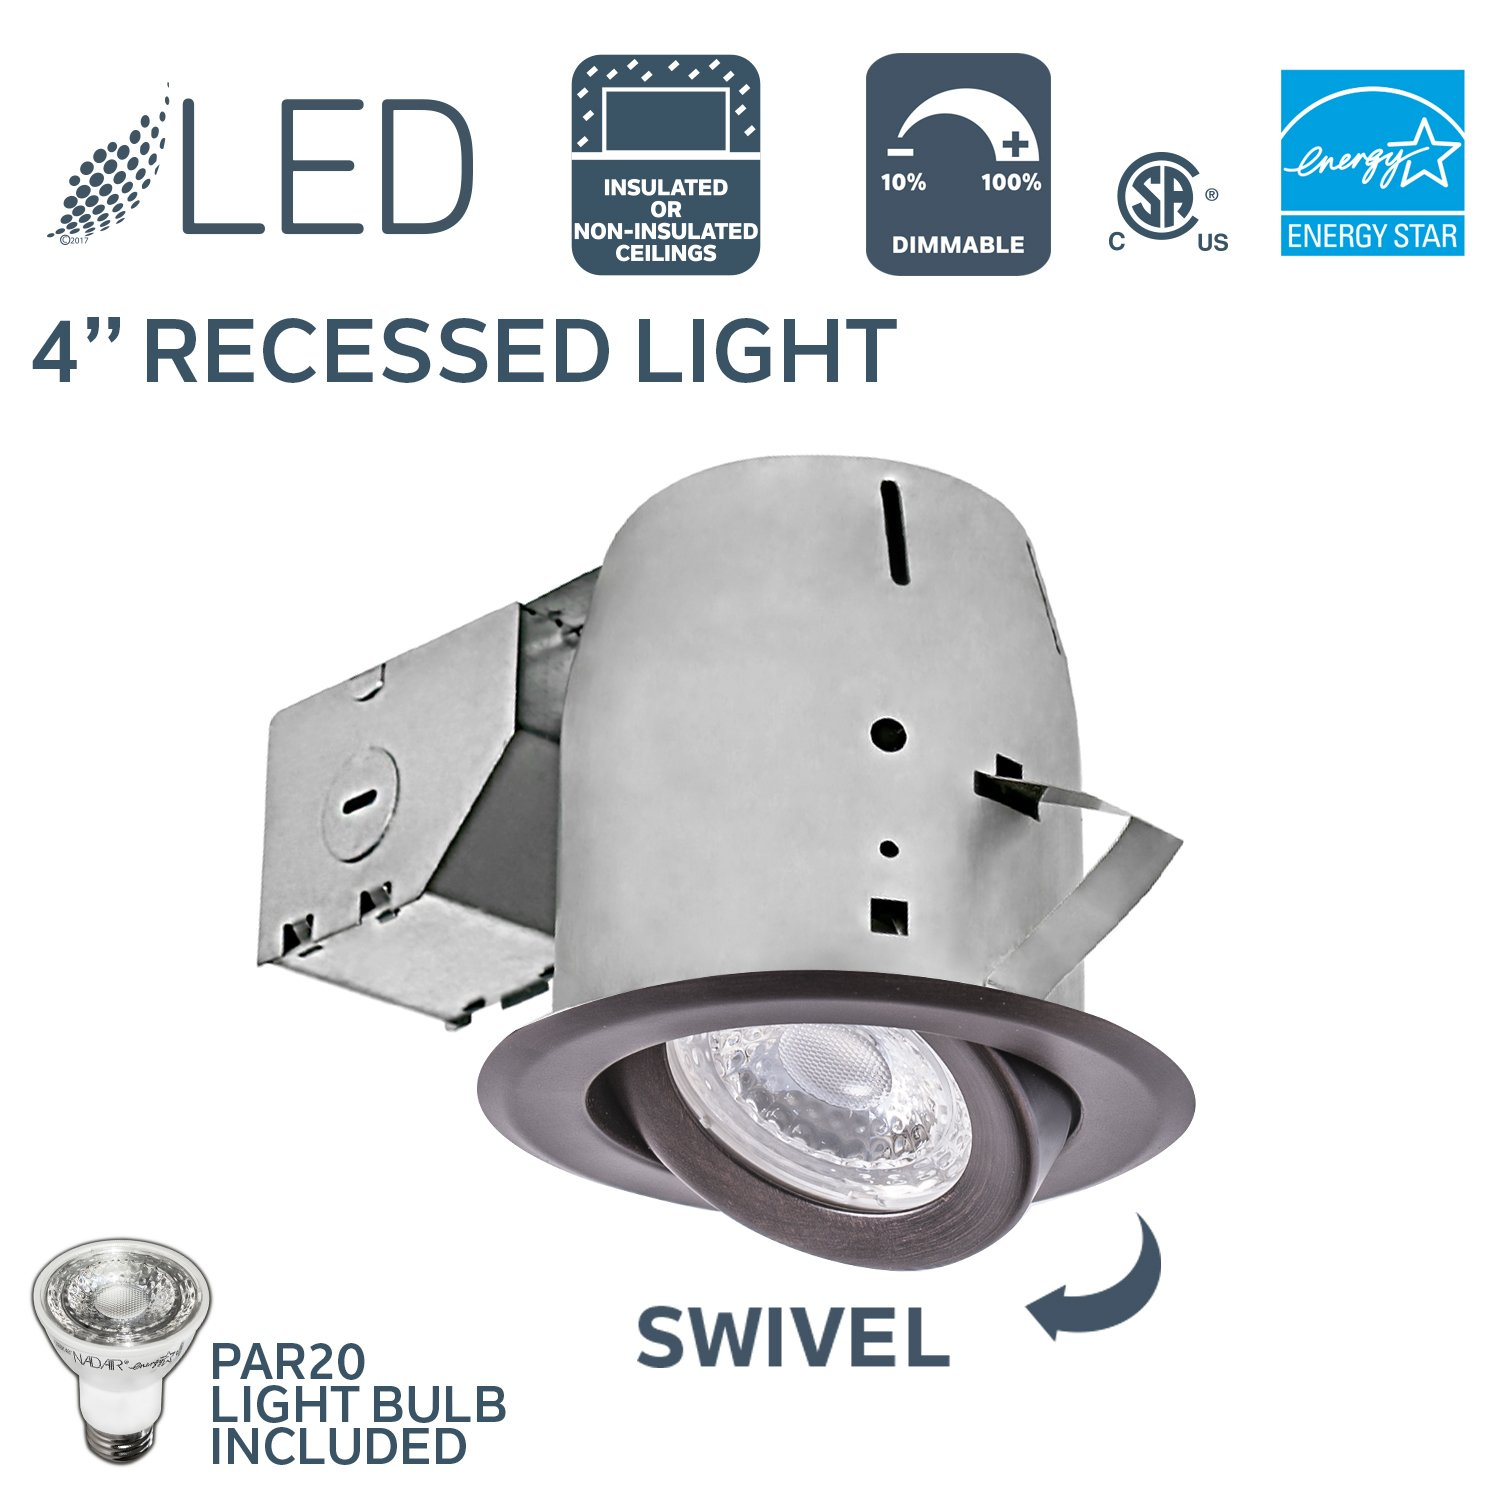 Nadair 4in LED Recessed Light Swivel Spotlight Dimmable Downlight - IC Rated - 3000K Warm White PAR20 630 Lumens Bulb (50 Watts Equivalent) Included - Bronze Color - PR378L-SWORB